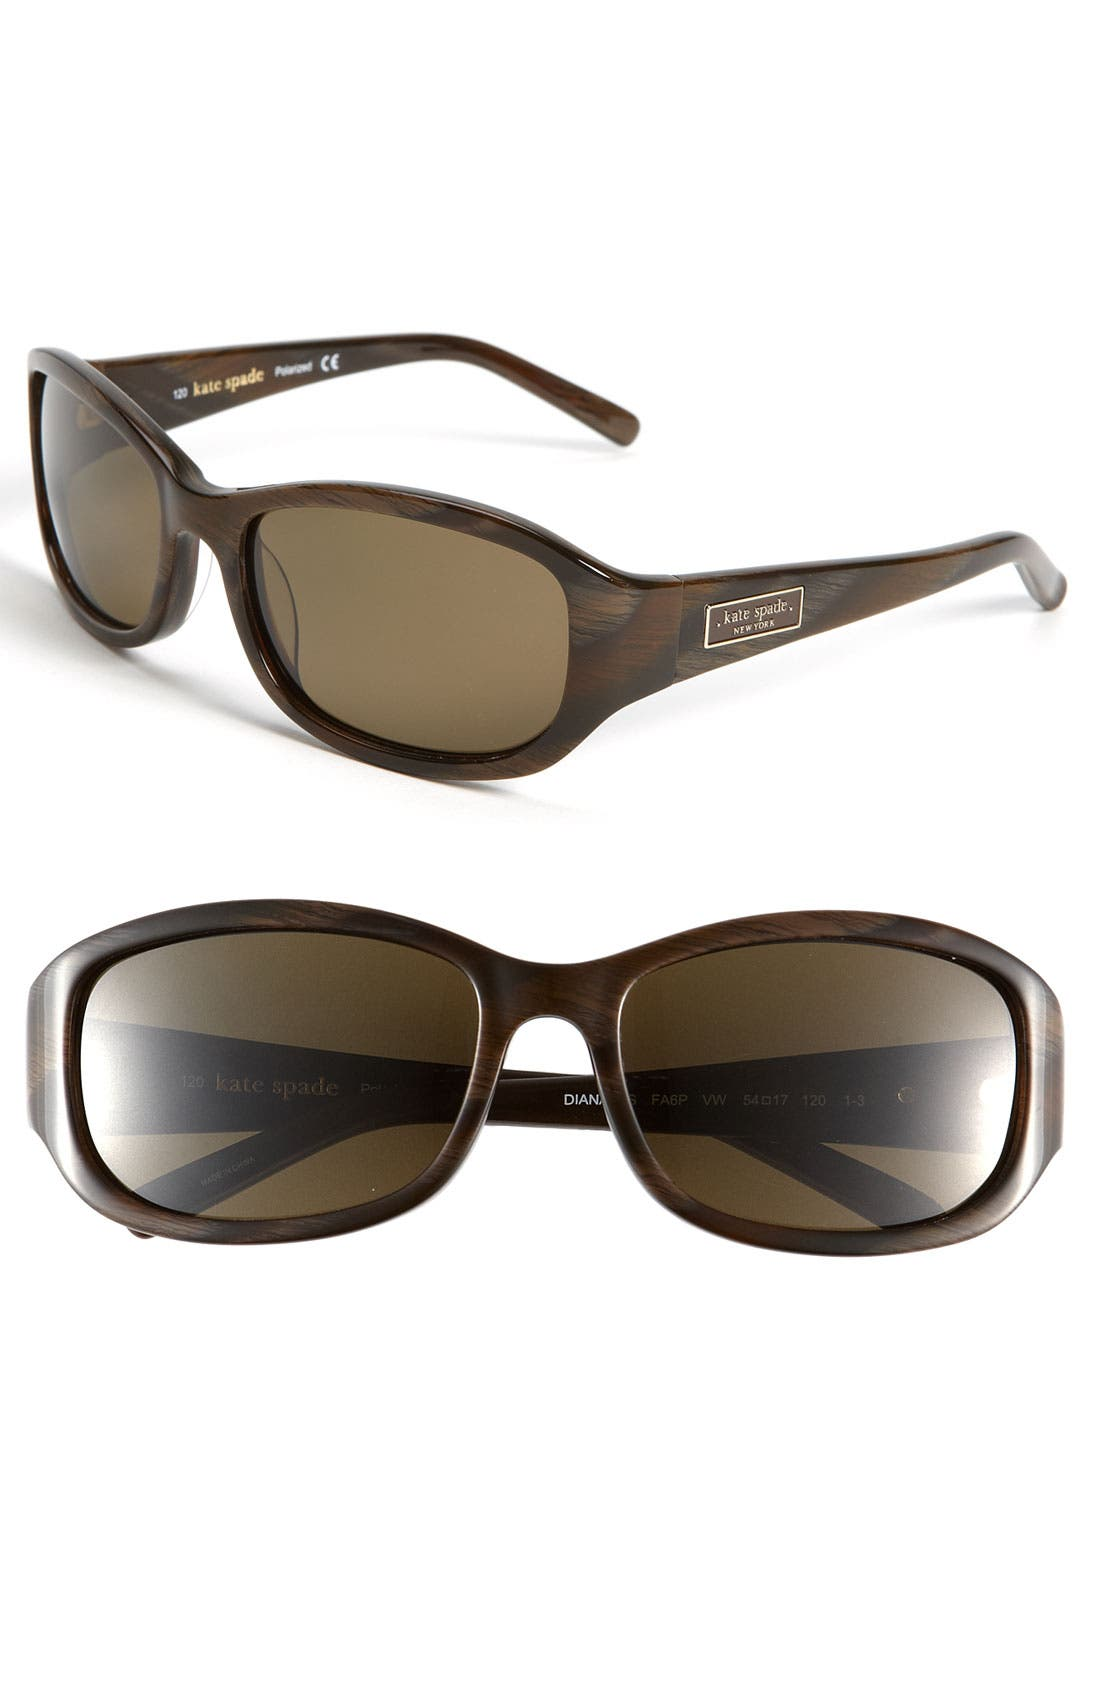 Main Image - kate spade new york 'diana' 54mm polarized sunglasses